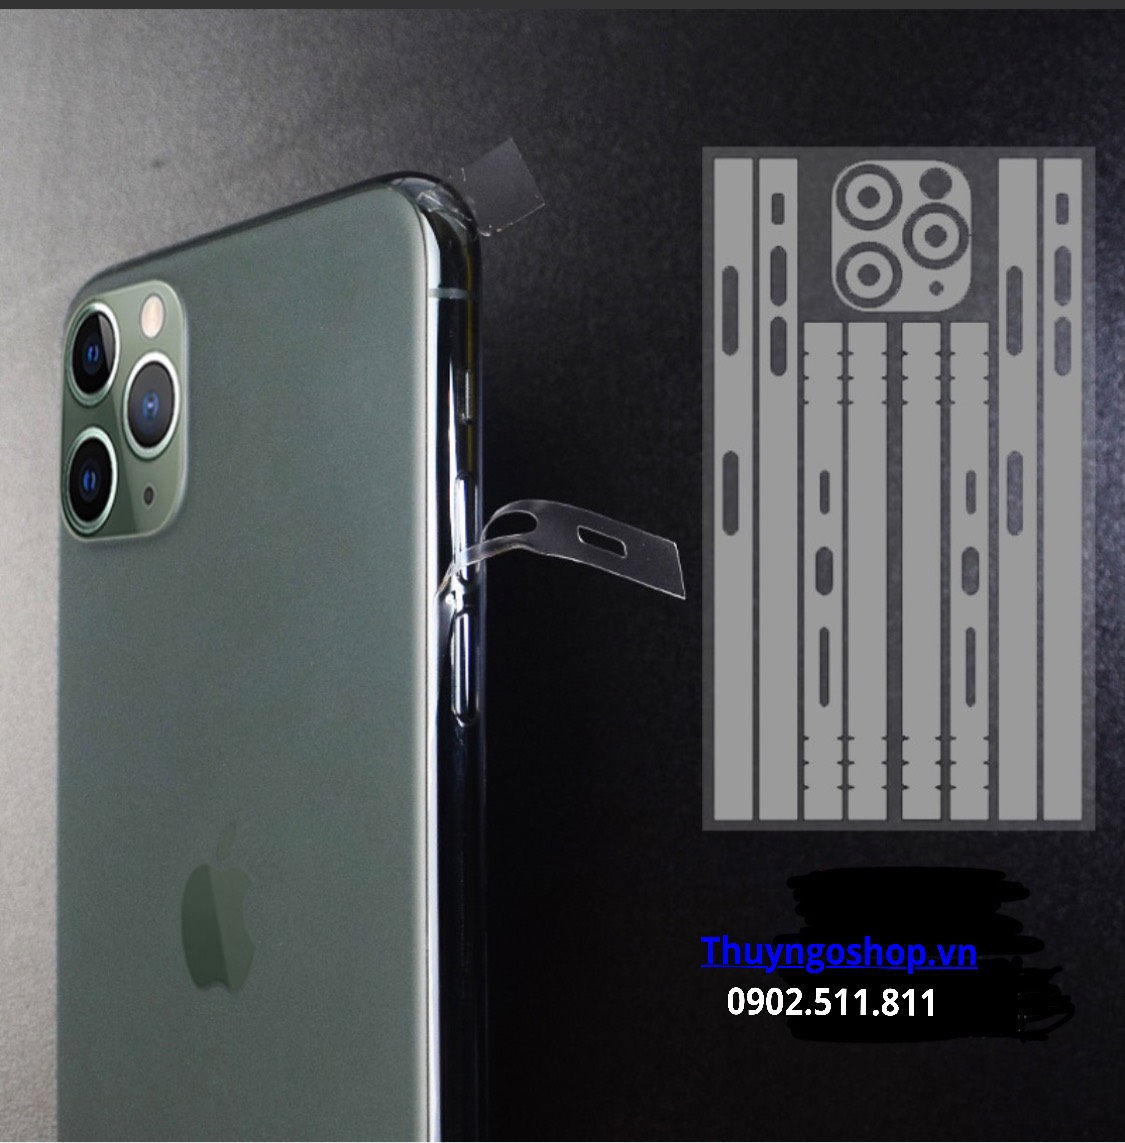 PPF 4 cạnh viền trong suốt / mờ Iphone 11